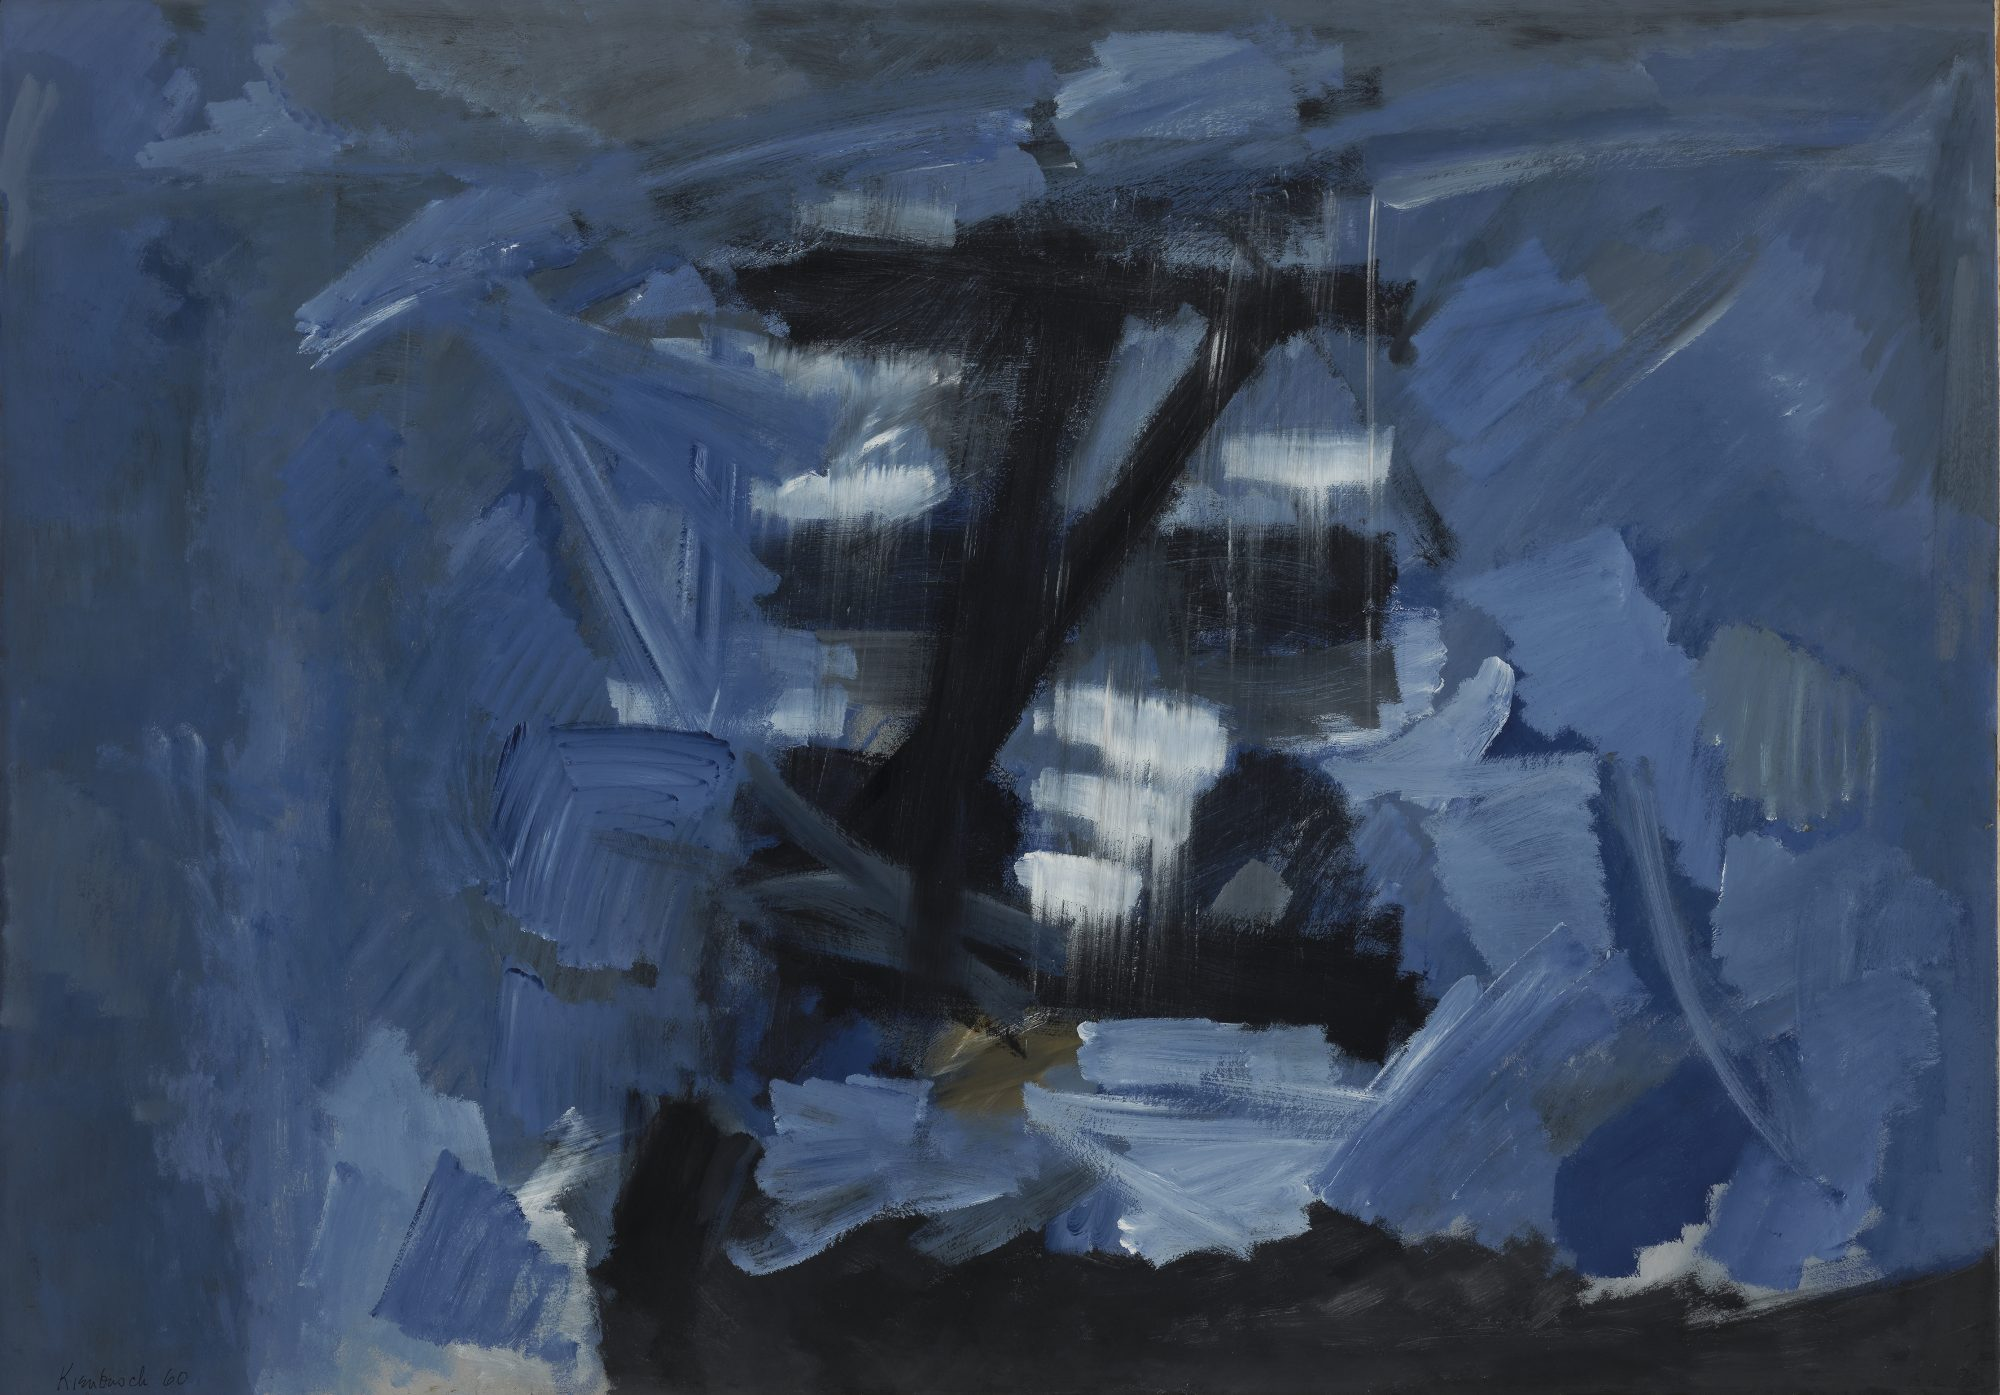 William Austin Kienbusch (American, 1914–1980) Sea Light, Casein on paper, 1960. Gift of Barry Benepe, Class of 1950, 61.18